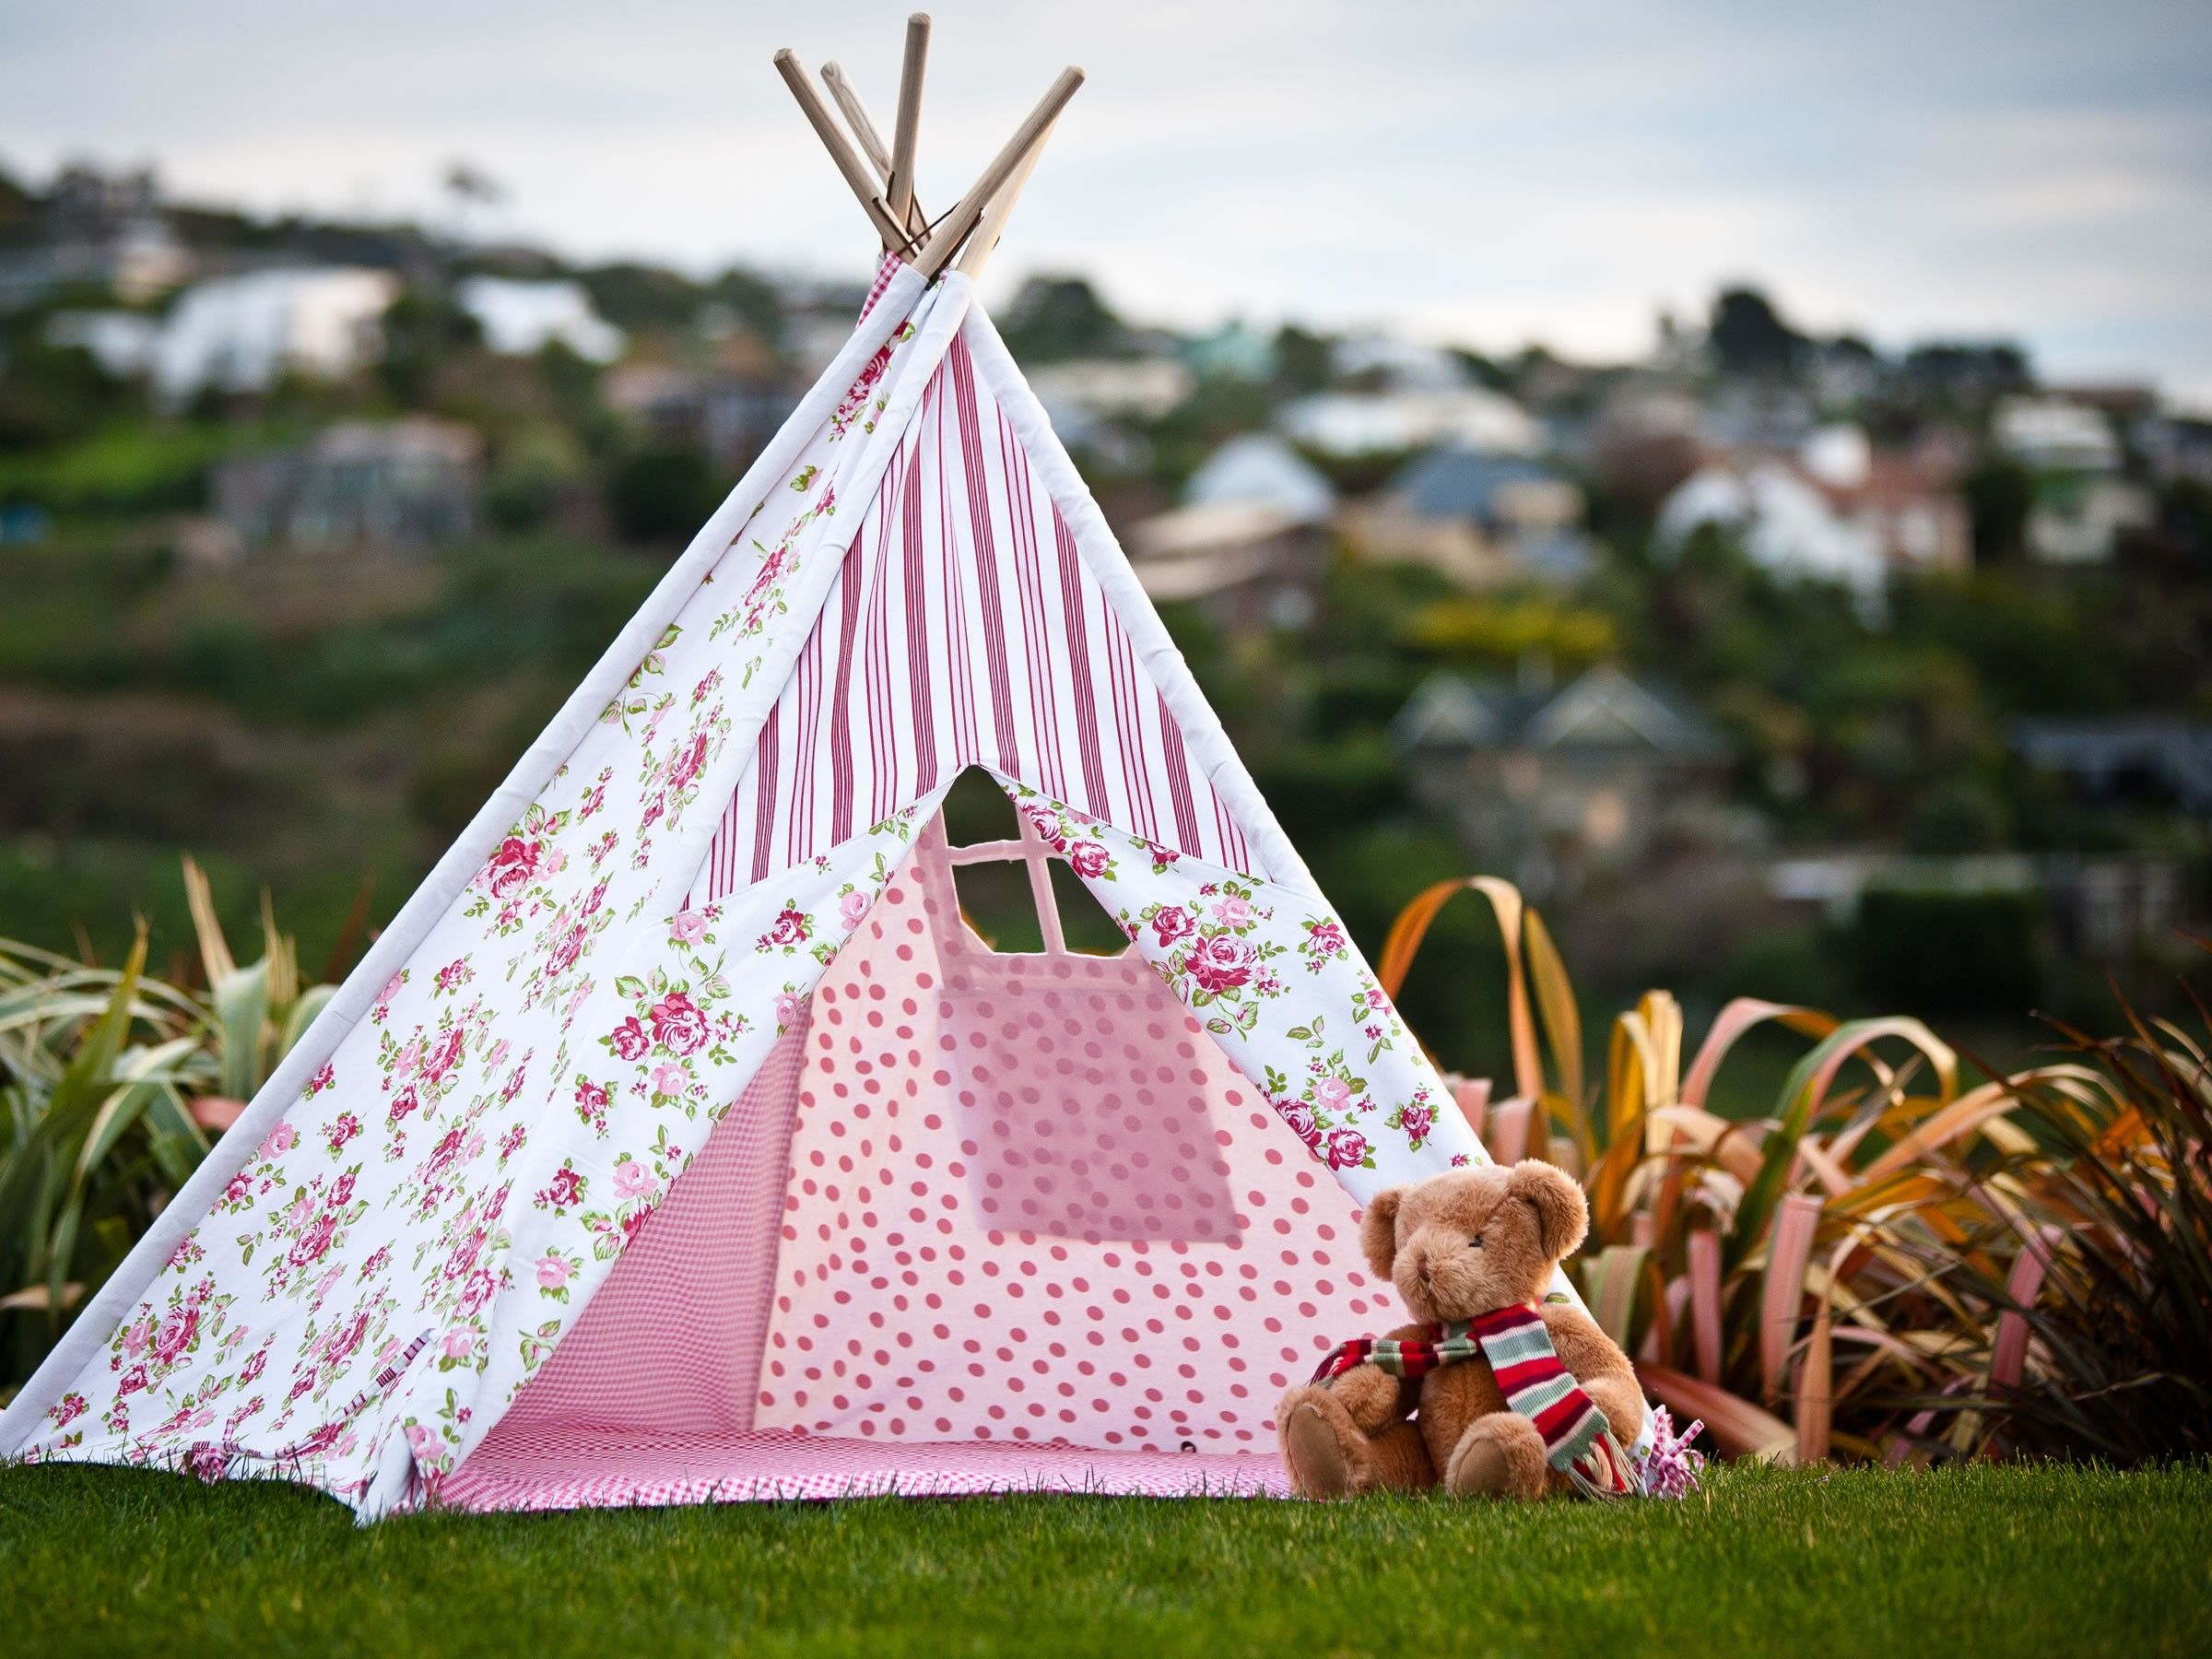 Buy Teepees for Kids Online u2013 Childrens Canvas Tipis or Teepee indian style teepees for Kids & $99 with afterpay variety of patterns | Toys Oscar Wants ...